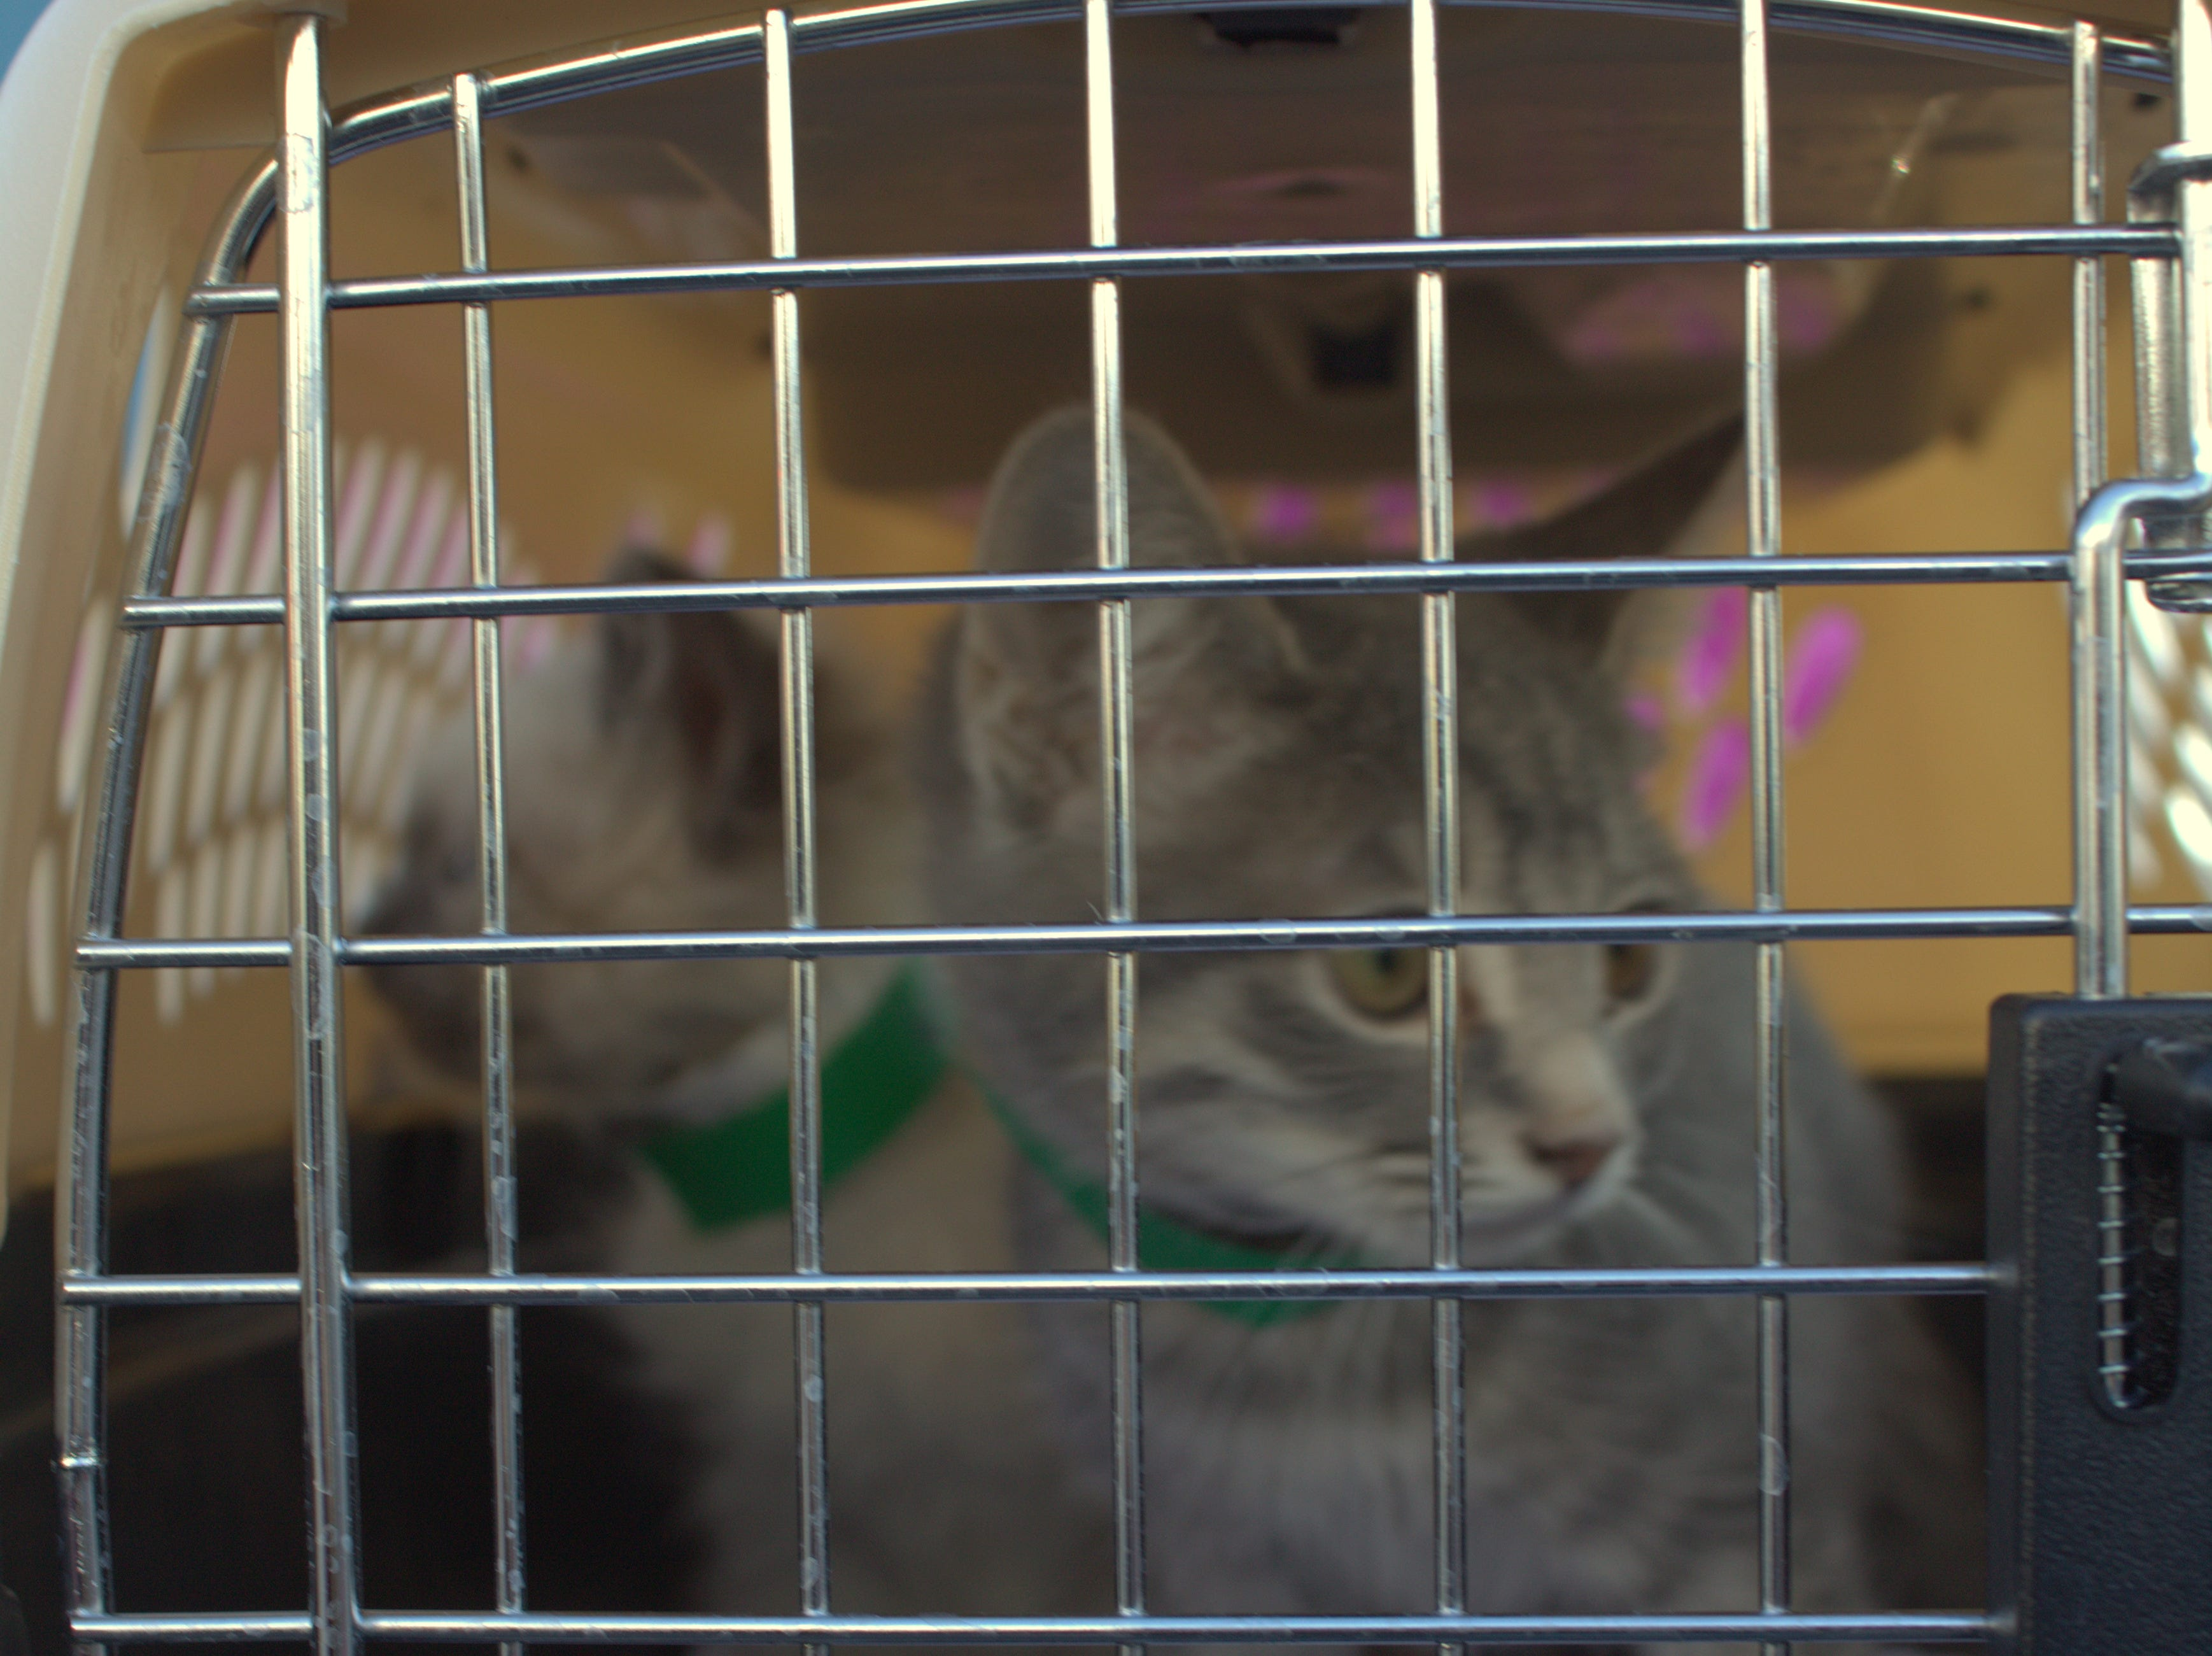 These kittens will be available for adoption at the Brandywine Valley SPCA's Mega Adoption Event at the Delaware State Fairgrounds in Harrington on Dec. 8 and 9, 2018.